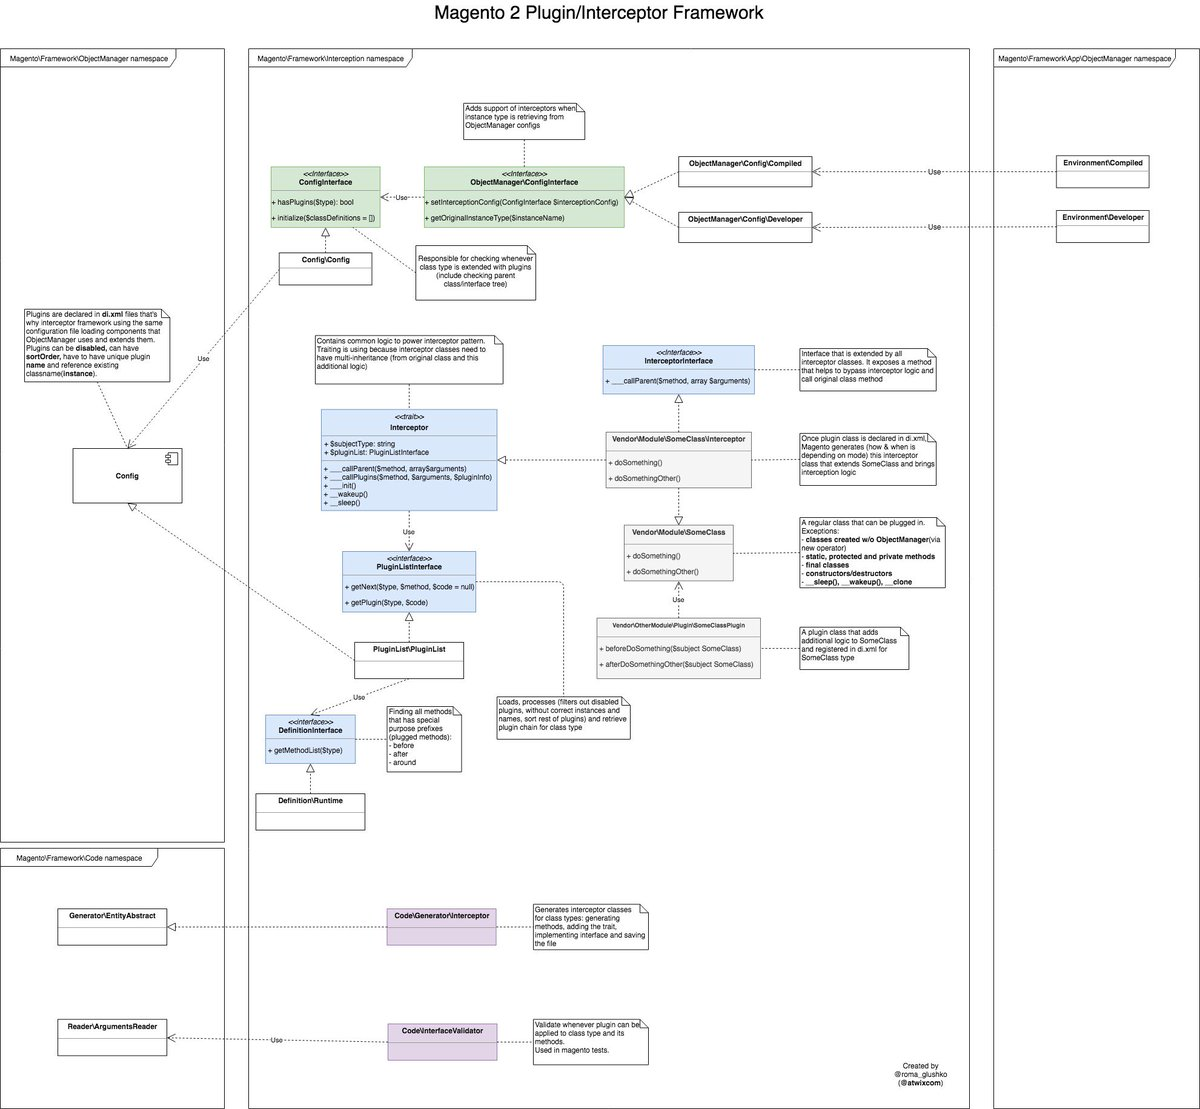 #Magento2 Plugin/Interceptor Framework Diagram 📚   Had to use colors to group components:  💚green - extending of ObjectManager 💙blue - powering interceptor workflow 💜purple - interceptor generation  #magento #magentocommunity #realmagento